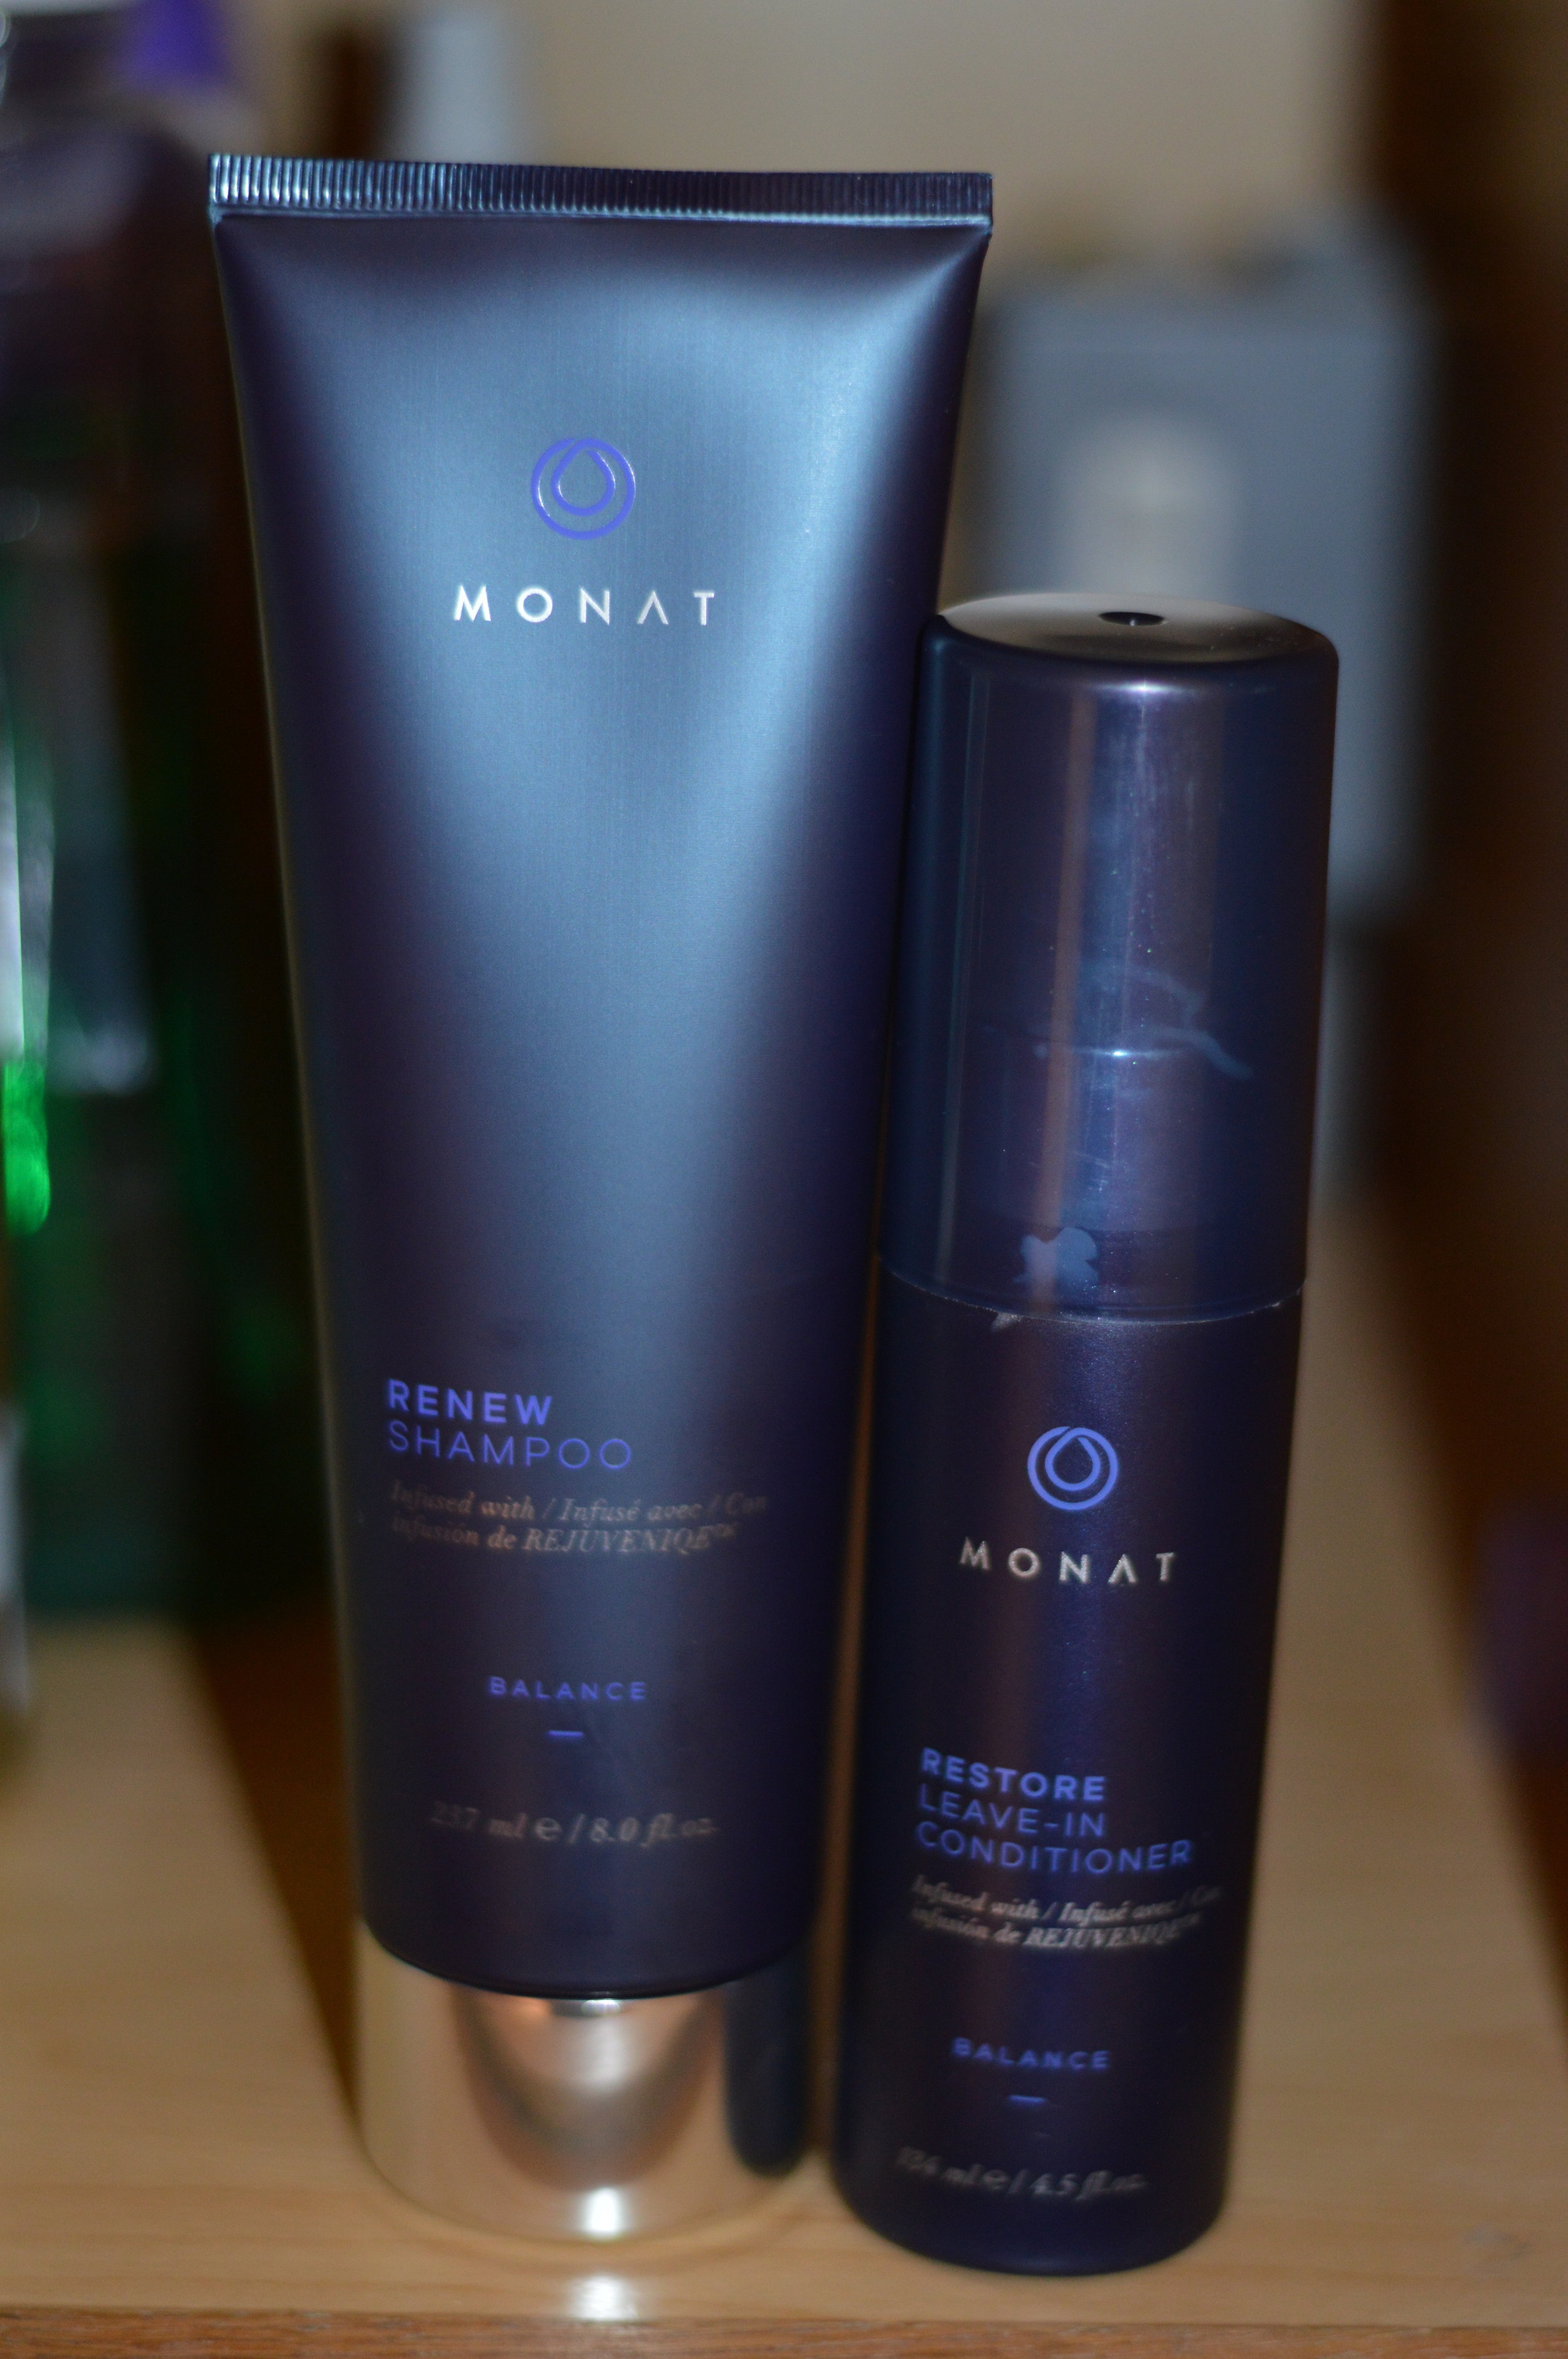 My Future of Hair Products: Simple, Effective ,Quality - Reducing unnecessary products